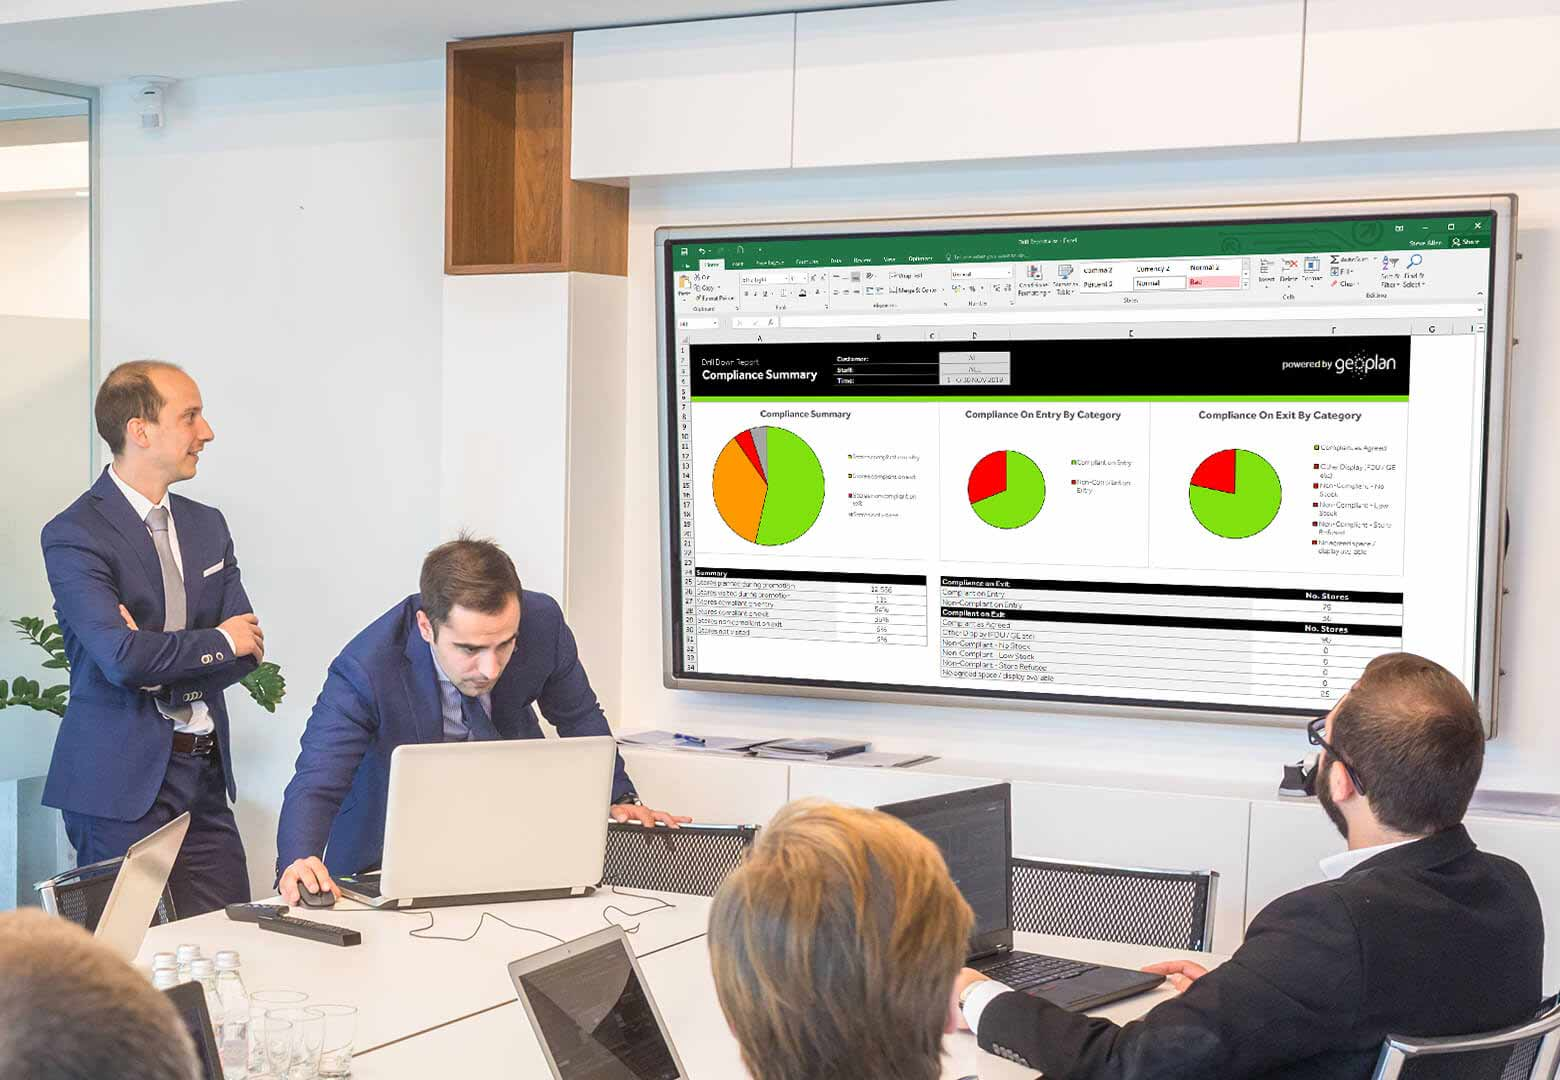 man presenting to co-workers drill down reports